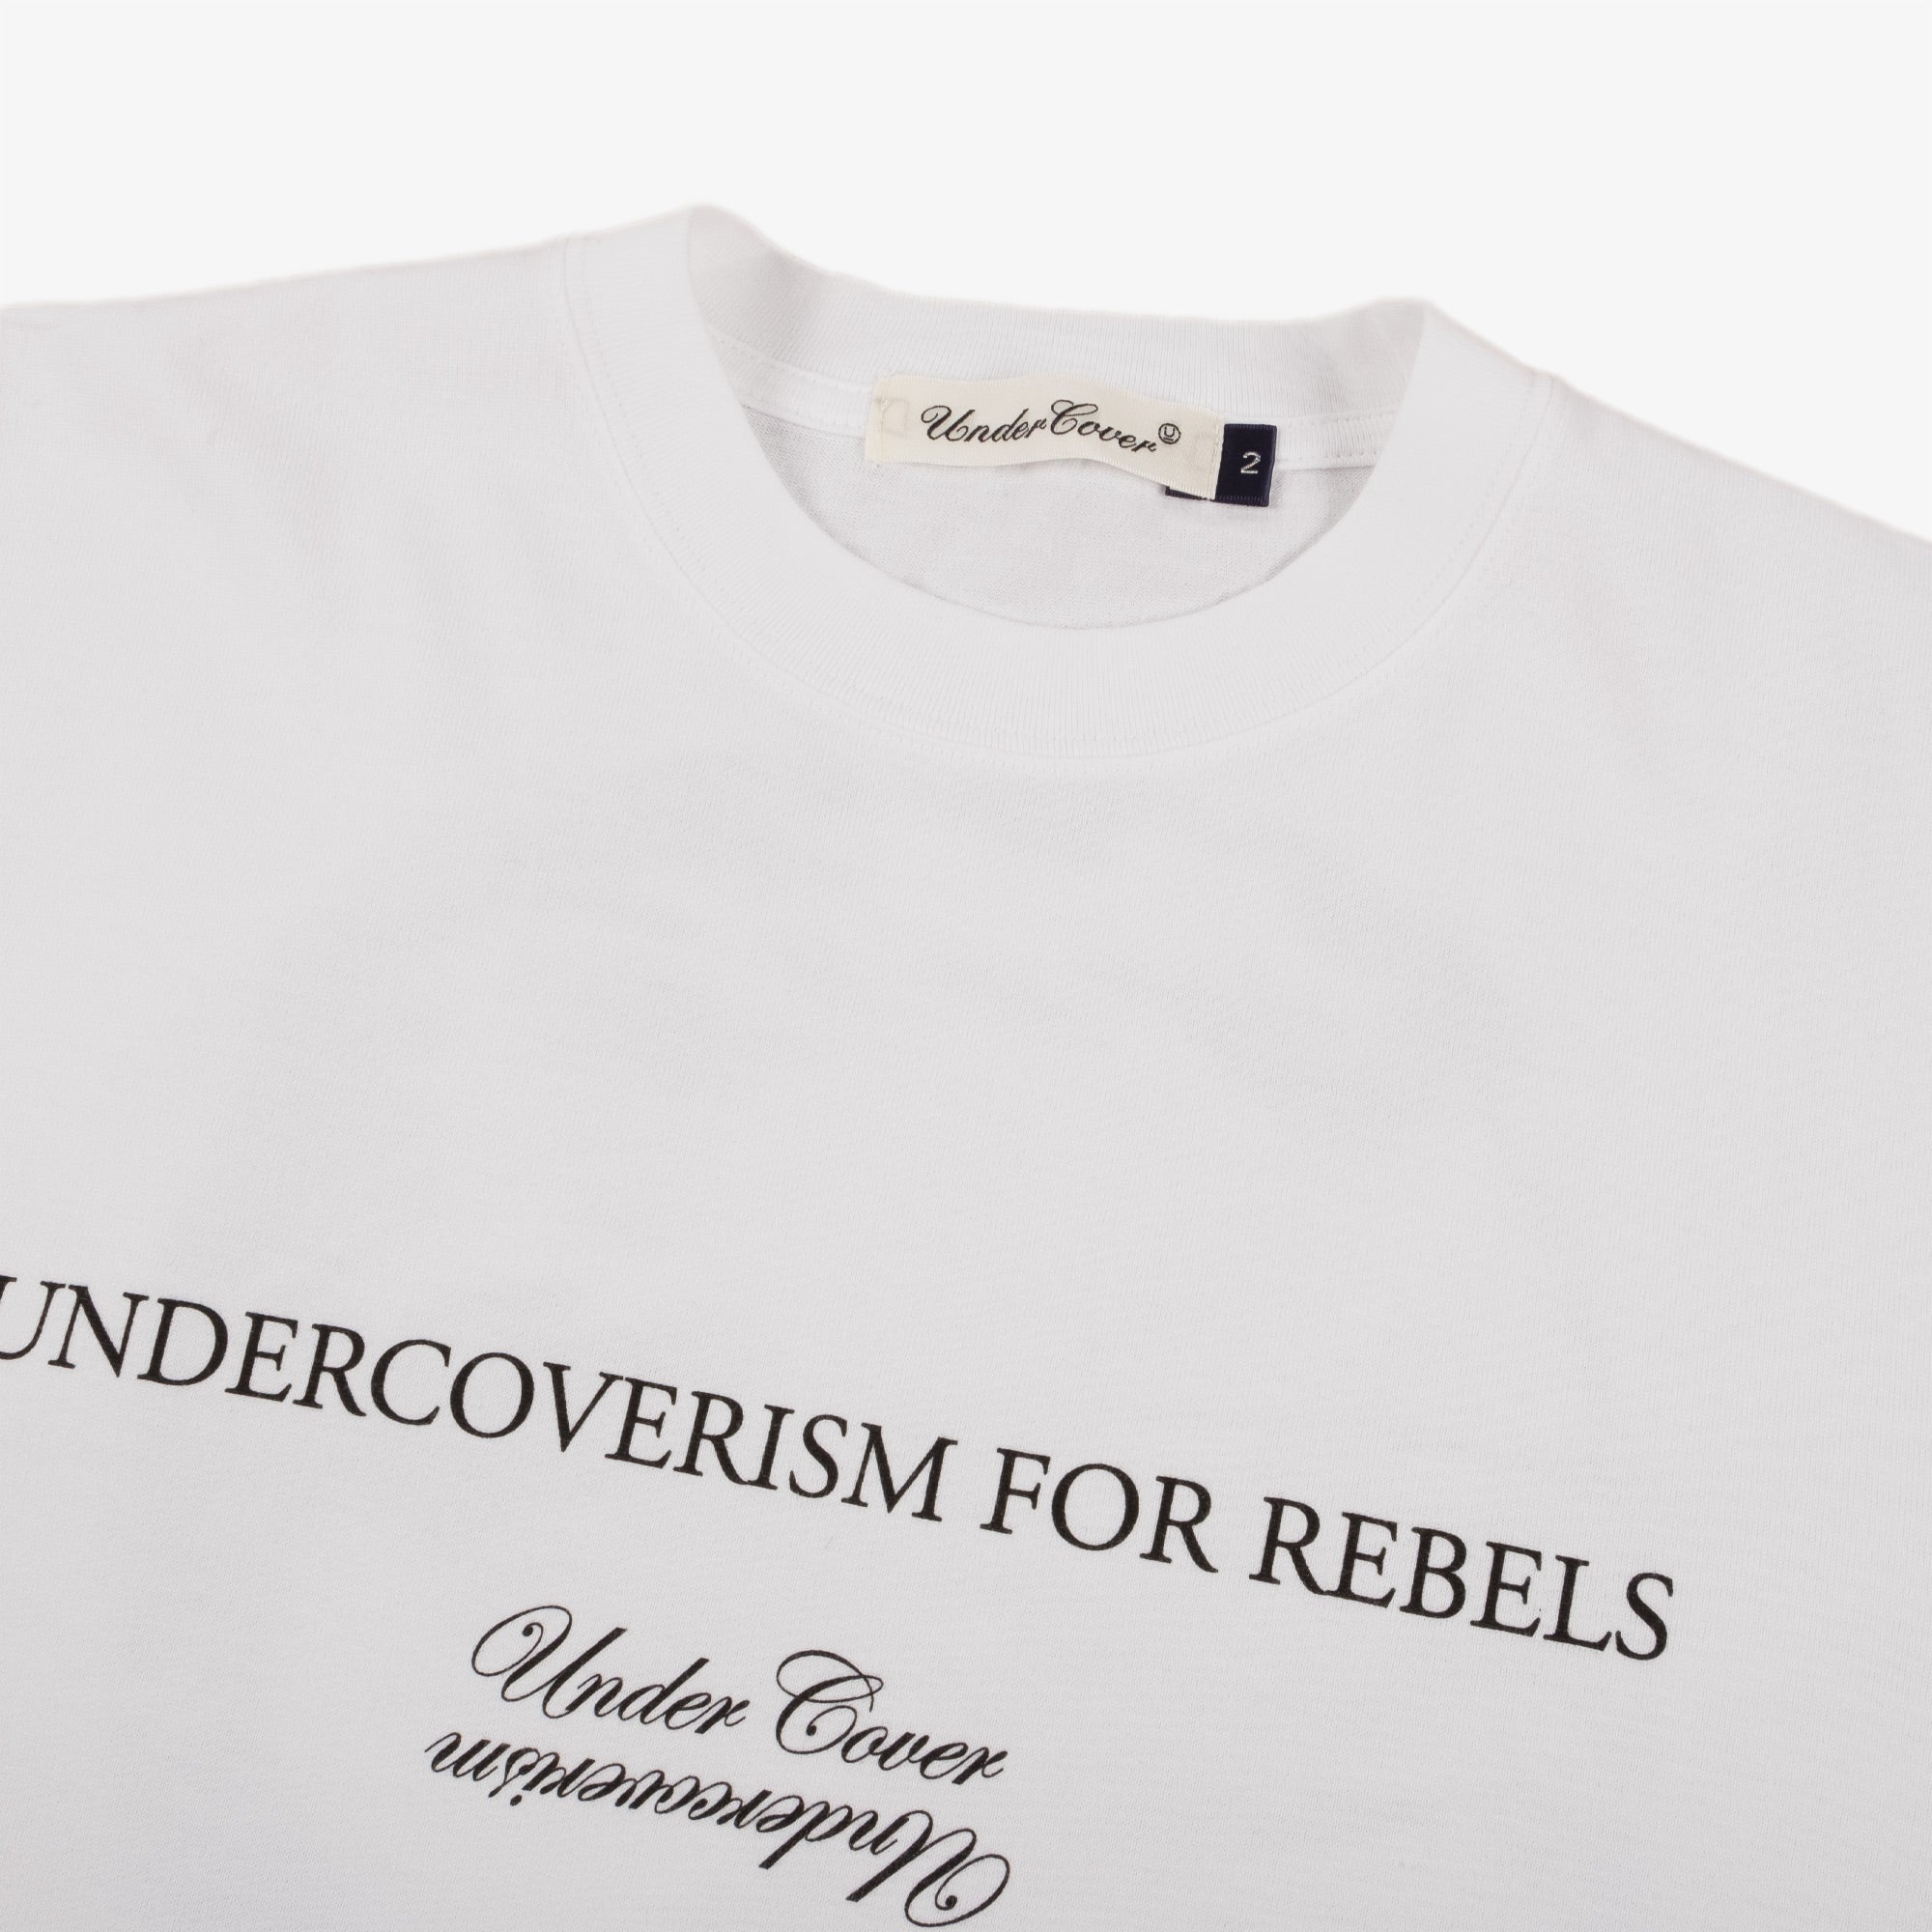 Undercover Blindfold Tee UC2A3807 - White 3